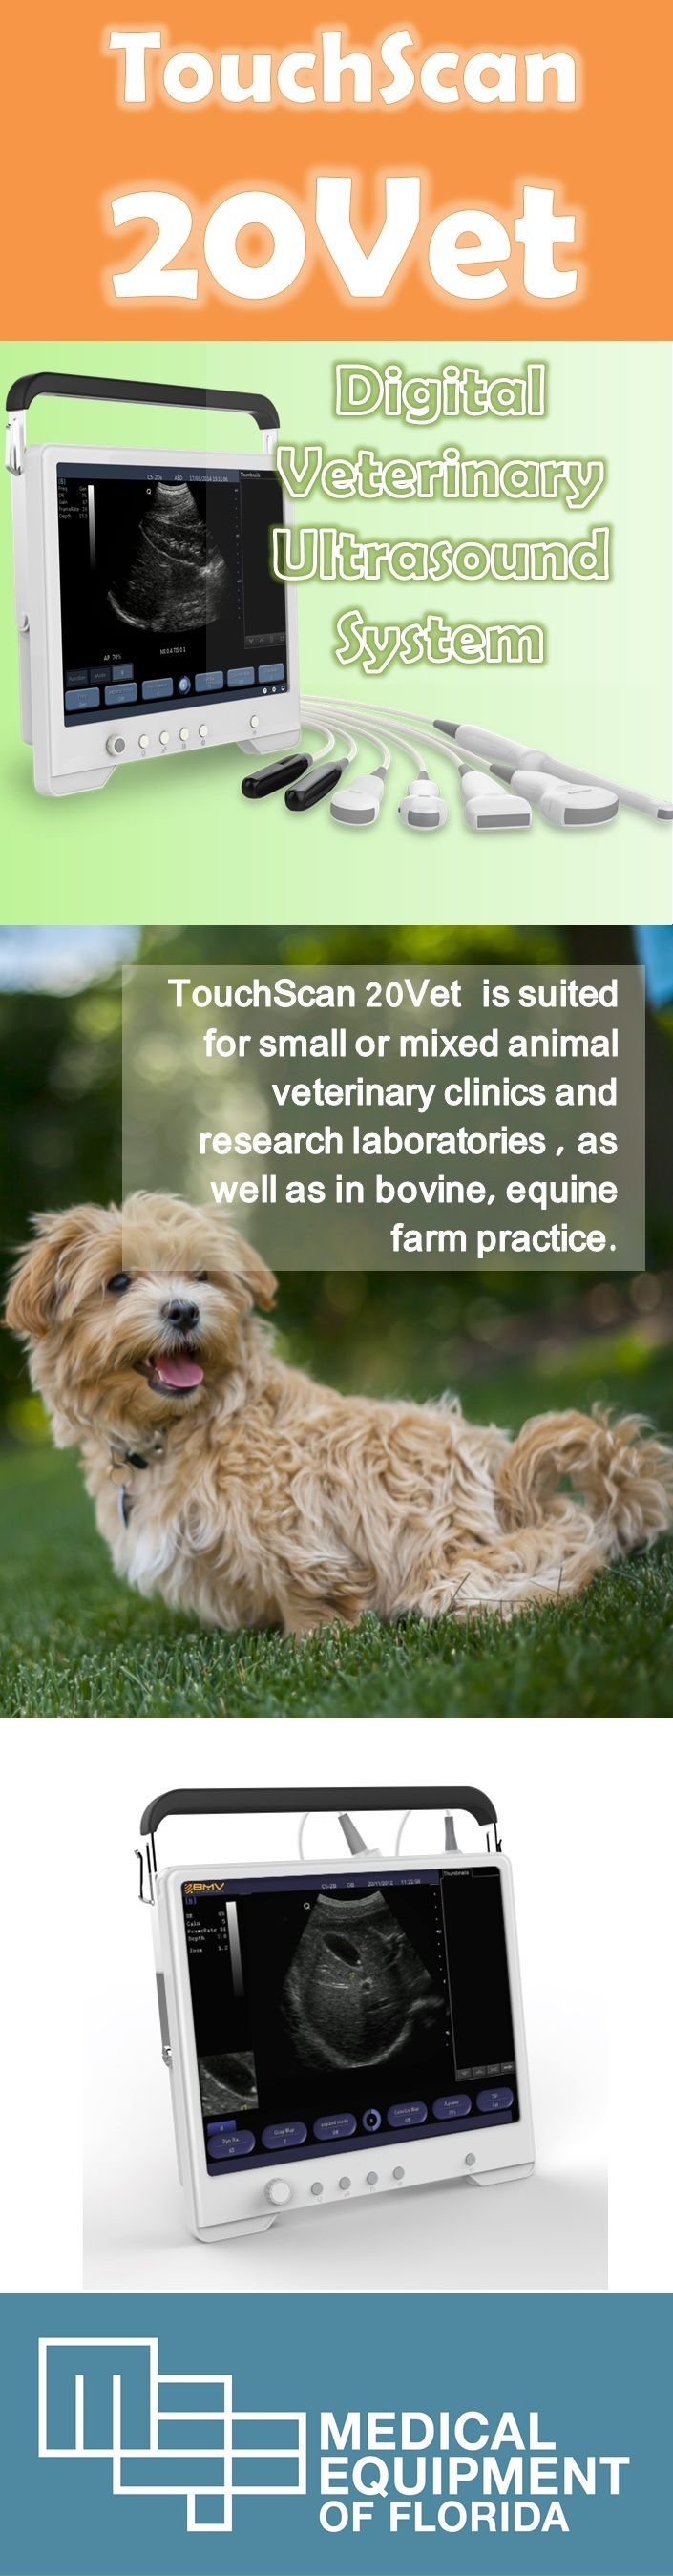 Equipped with highly useful veterinary functions including veterinary information management, body mark, OB table and specialized measurement packages, TS20V is suited for small or mixed animal veterinary clinics and research laboratories as well as in bovine, equine farm practice. Interested? Call us today for pricing!